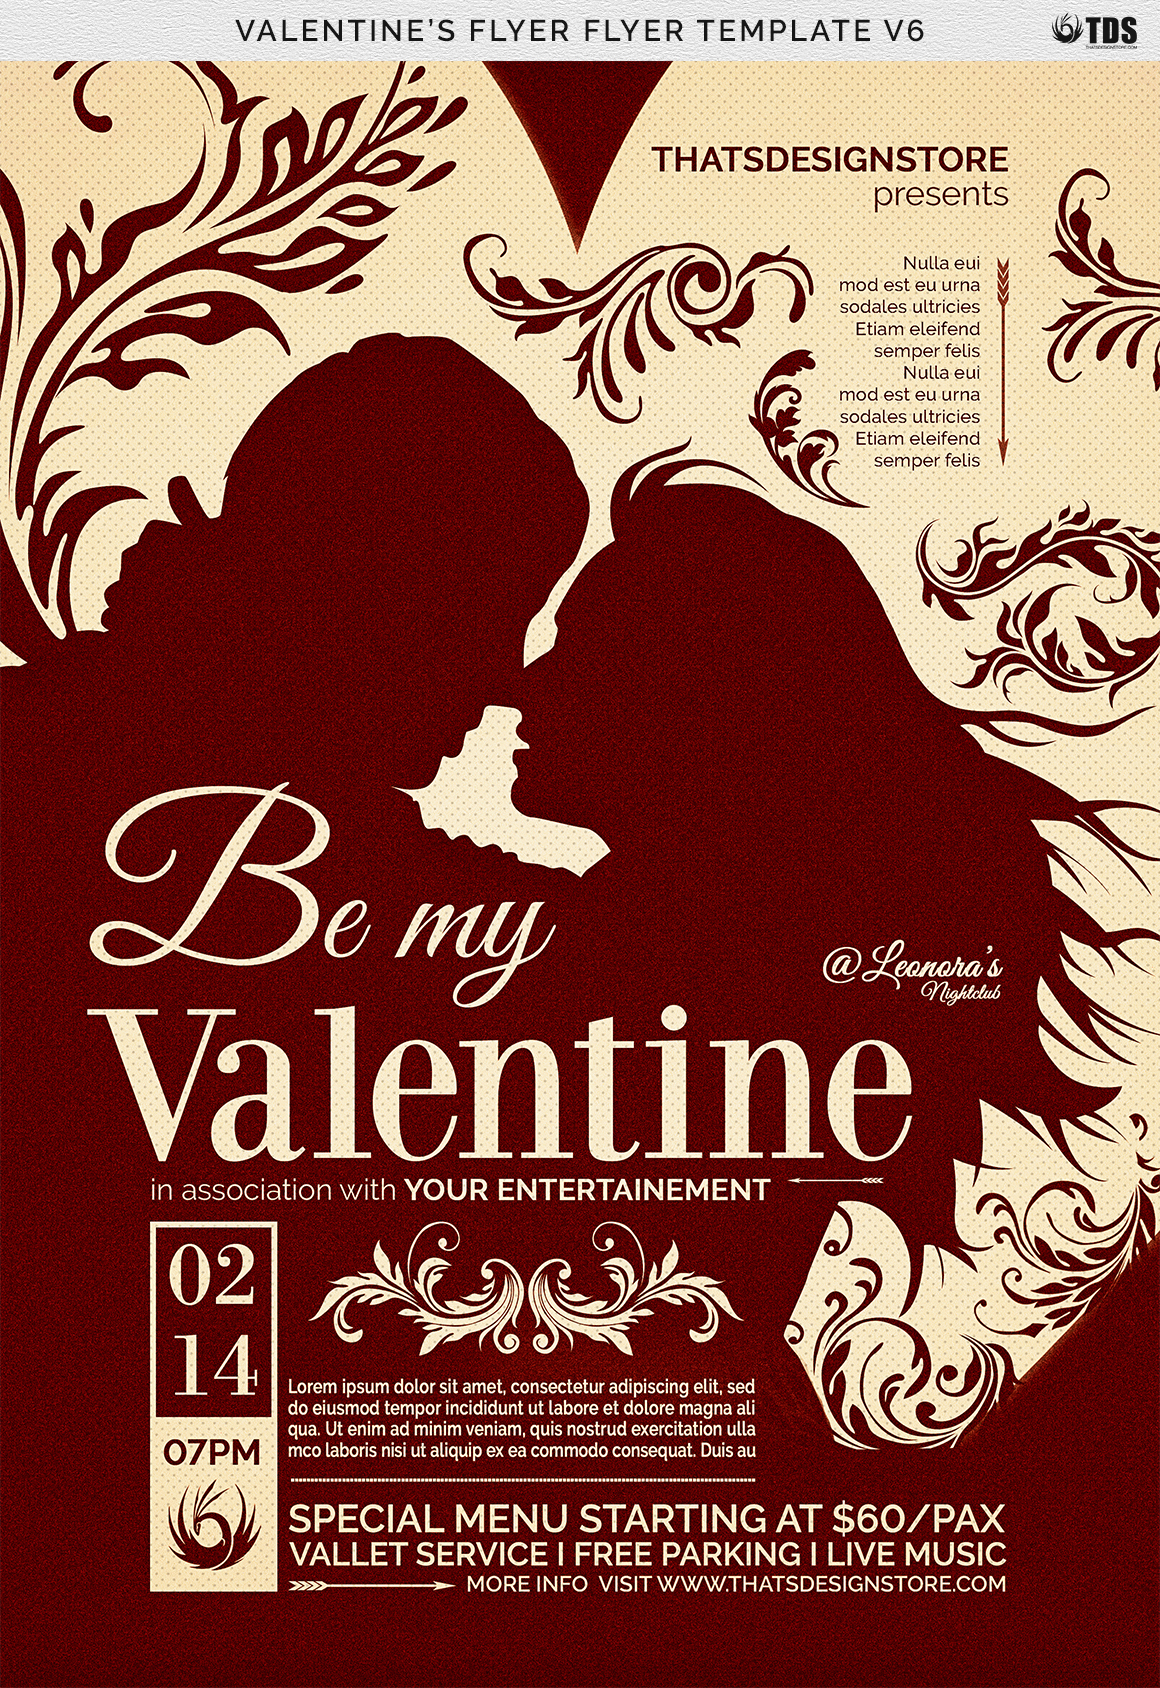 Valentines Day Flyer Template V6 example image 7